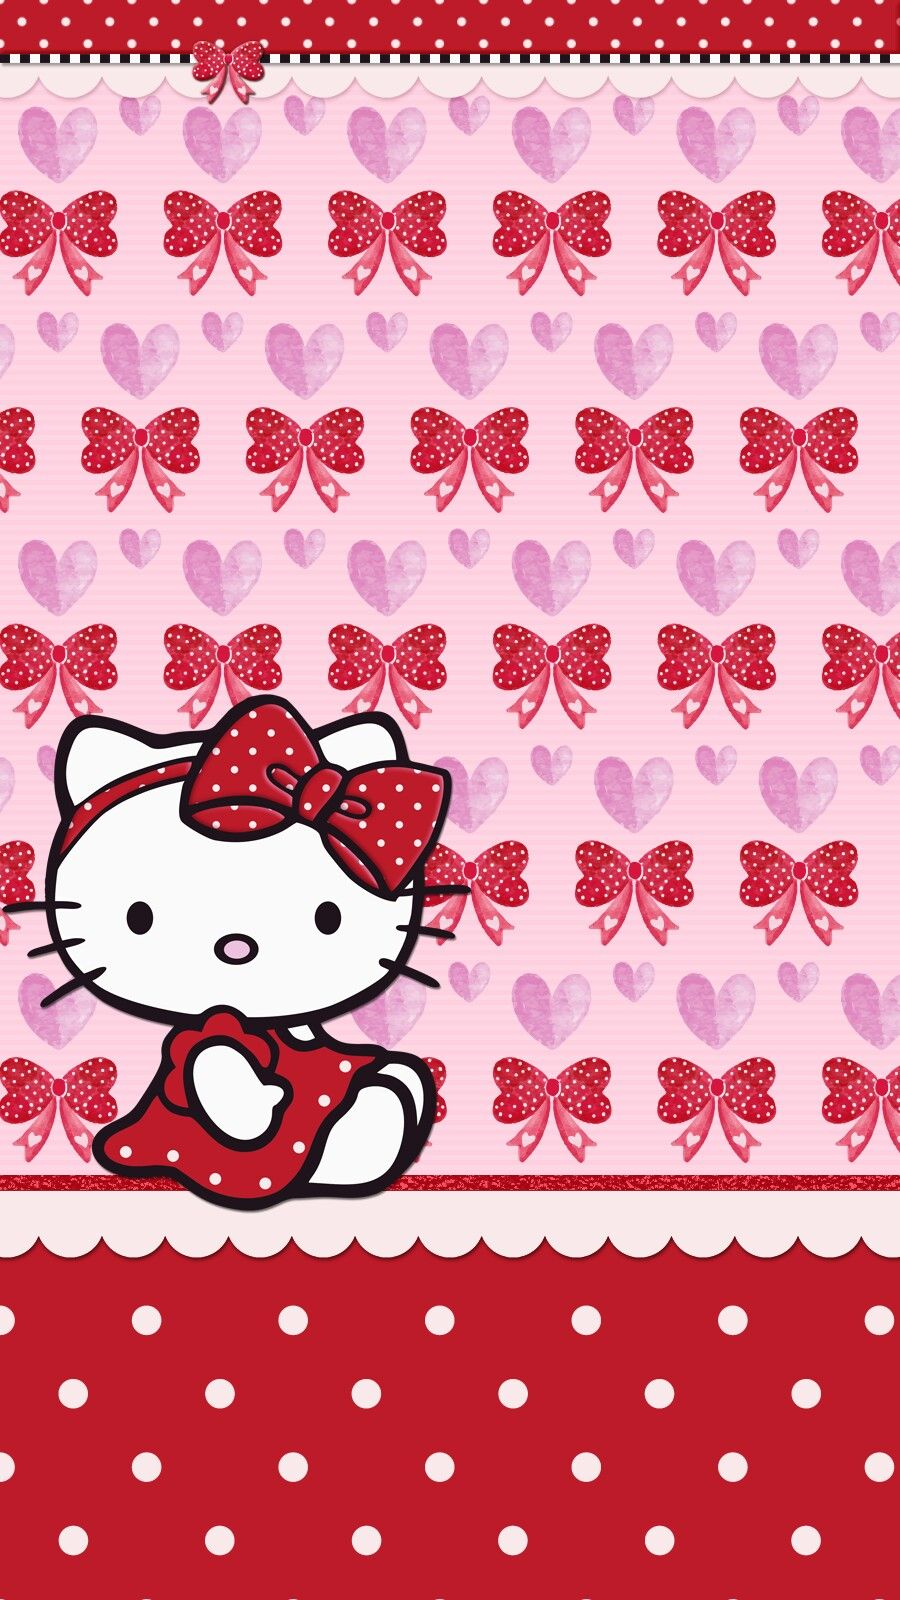 Must see Wallpaper Hello Kitty Android - 1247612f4c7e5a88e3842d39f44a2bab  Snapshot_792966.jpg